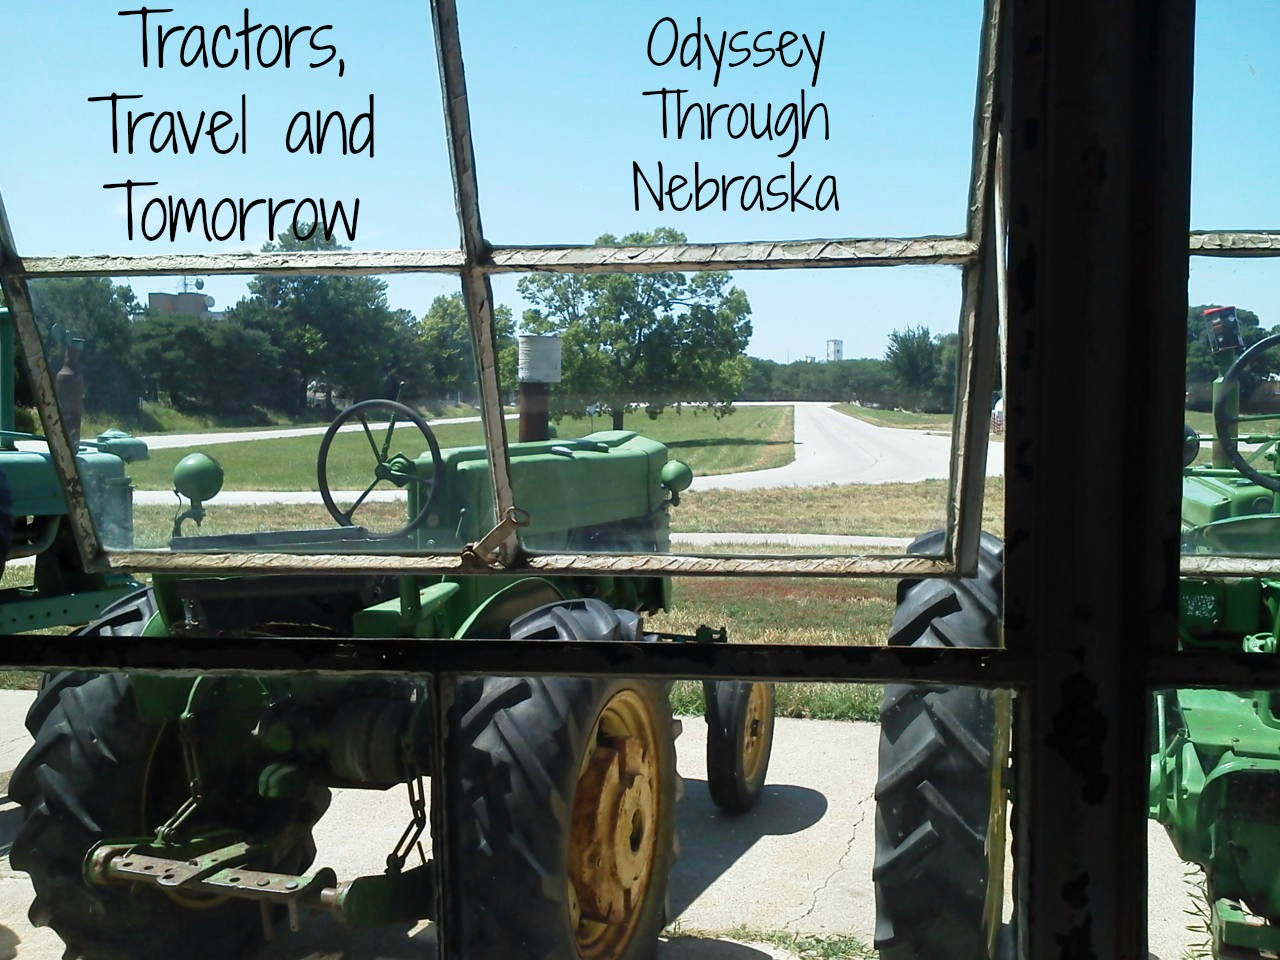 Odyssey Through Nebraska thoughts on tractors, travel and plans for the blog